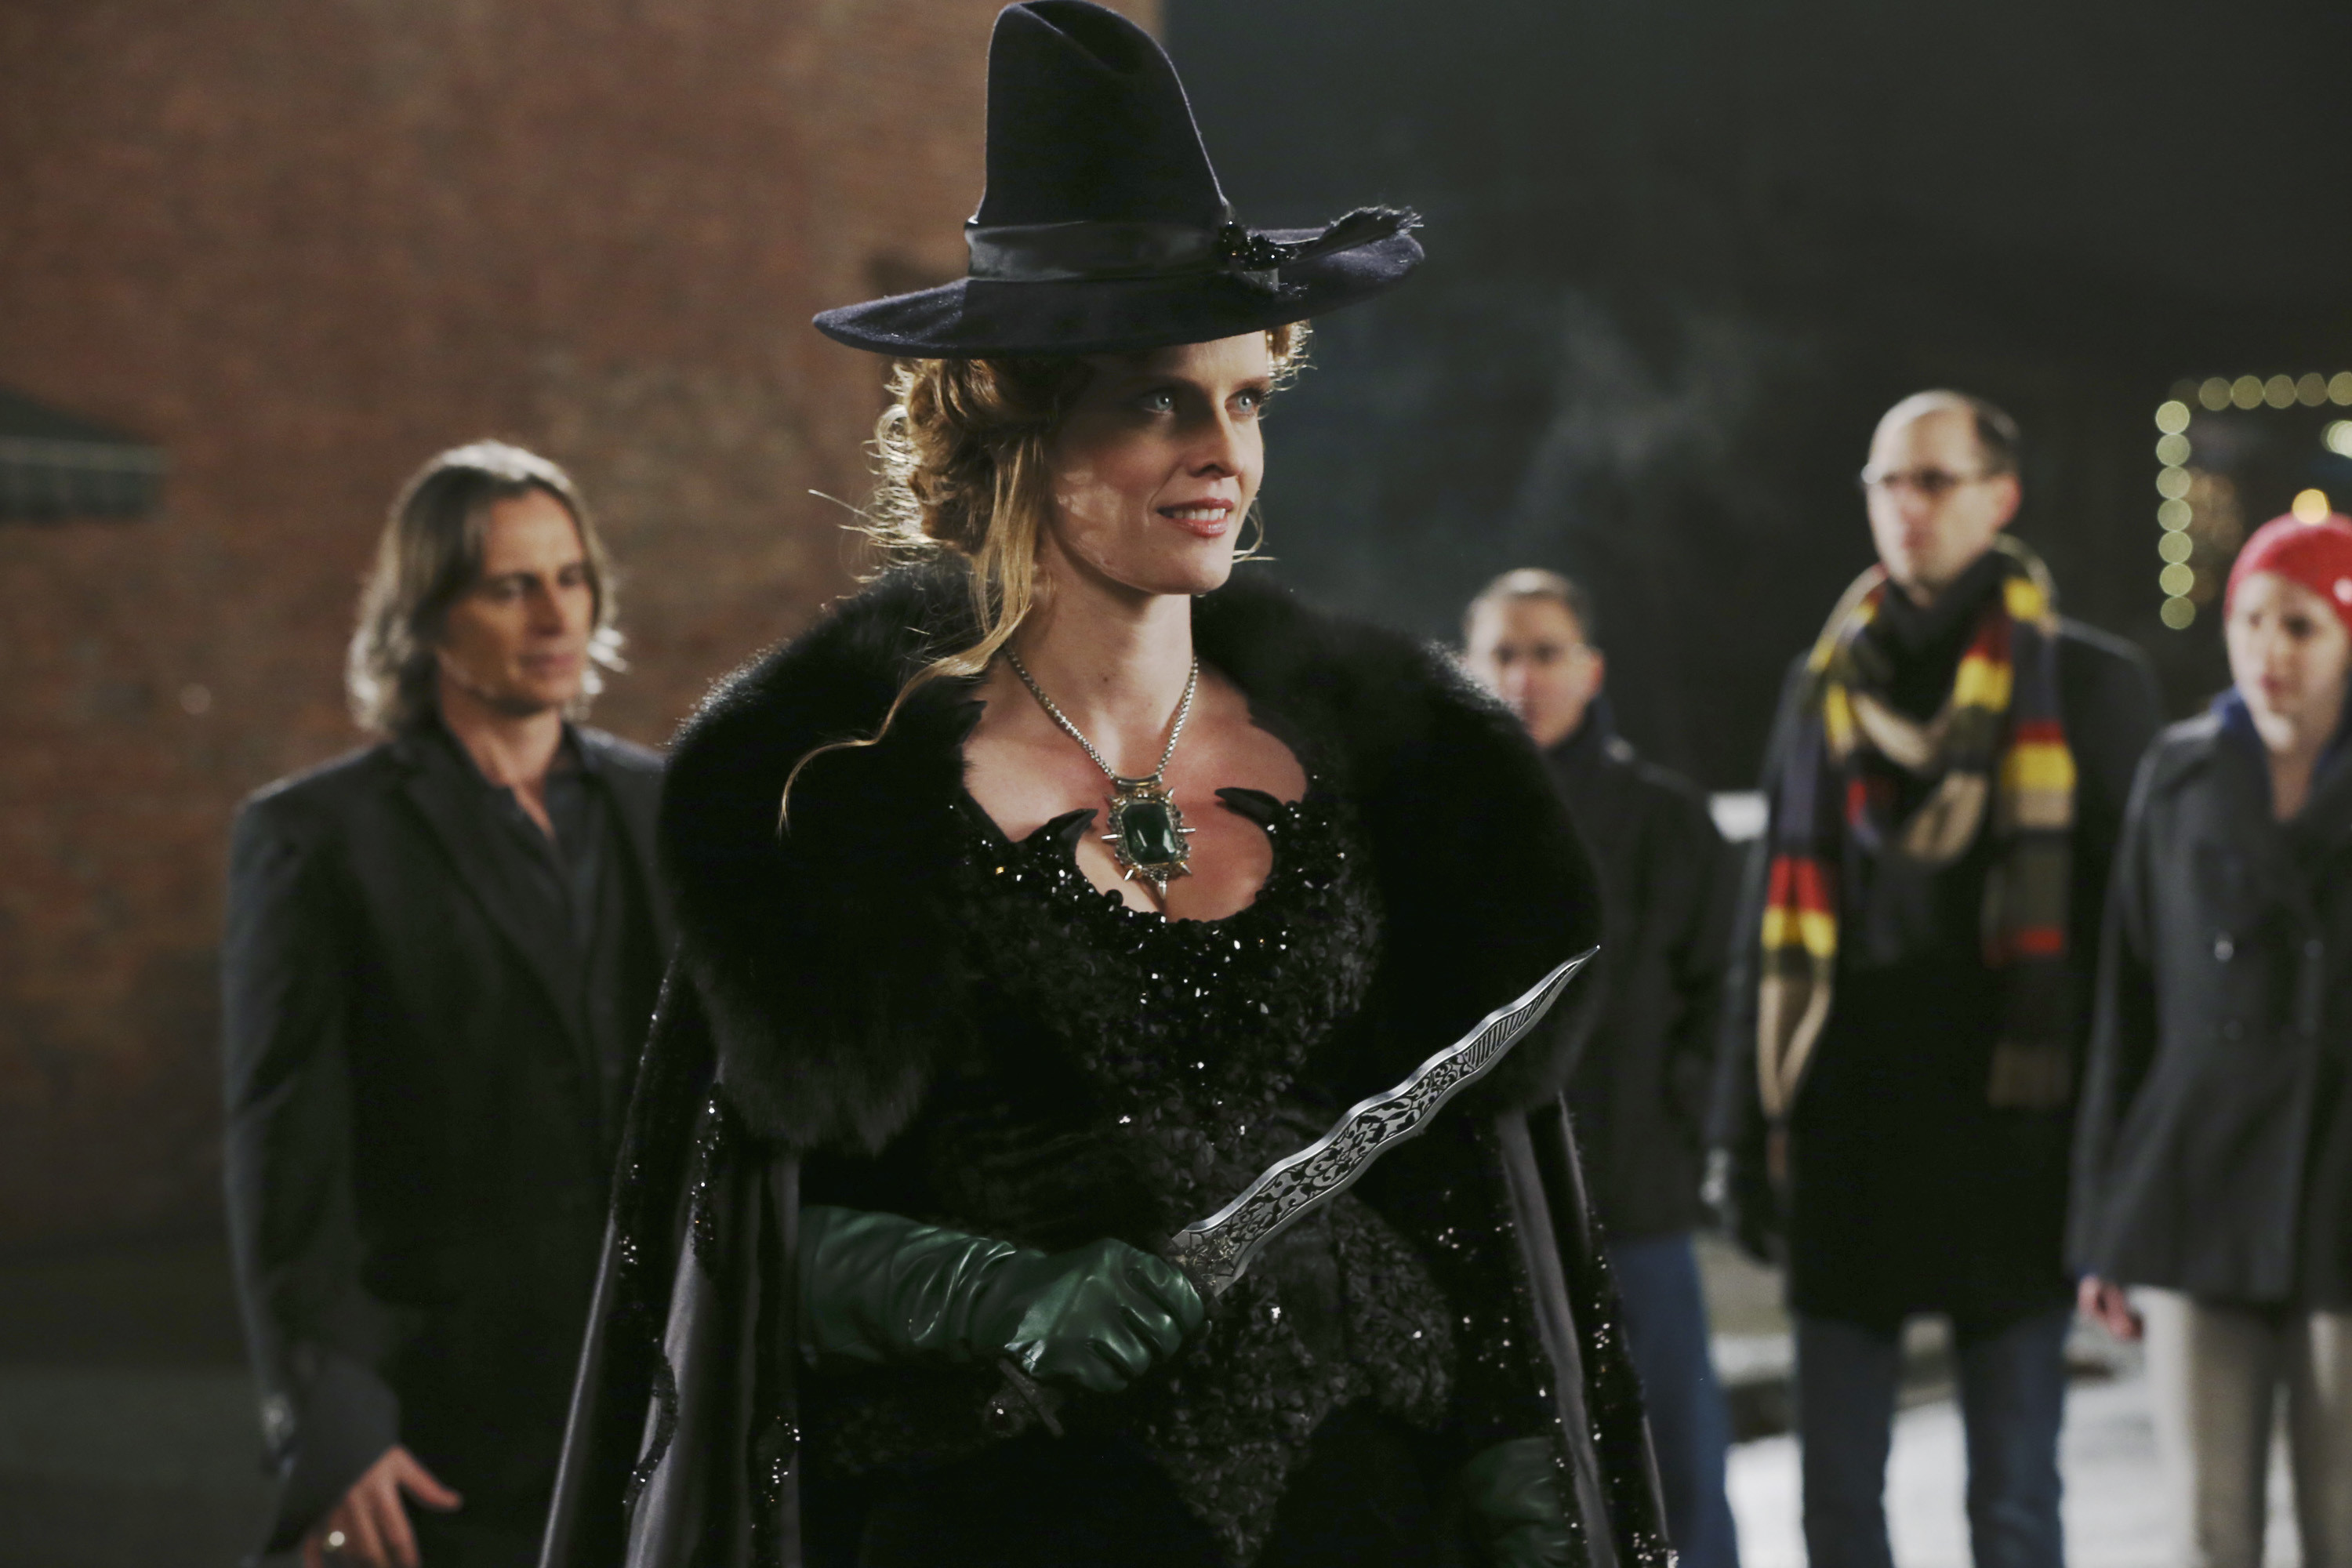 Six Beloved Cast Members Are Leaving 'Once Upon a Time' After Season 6